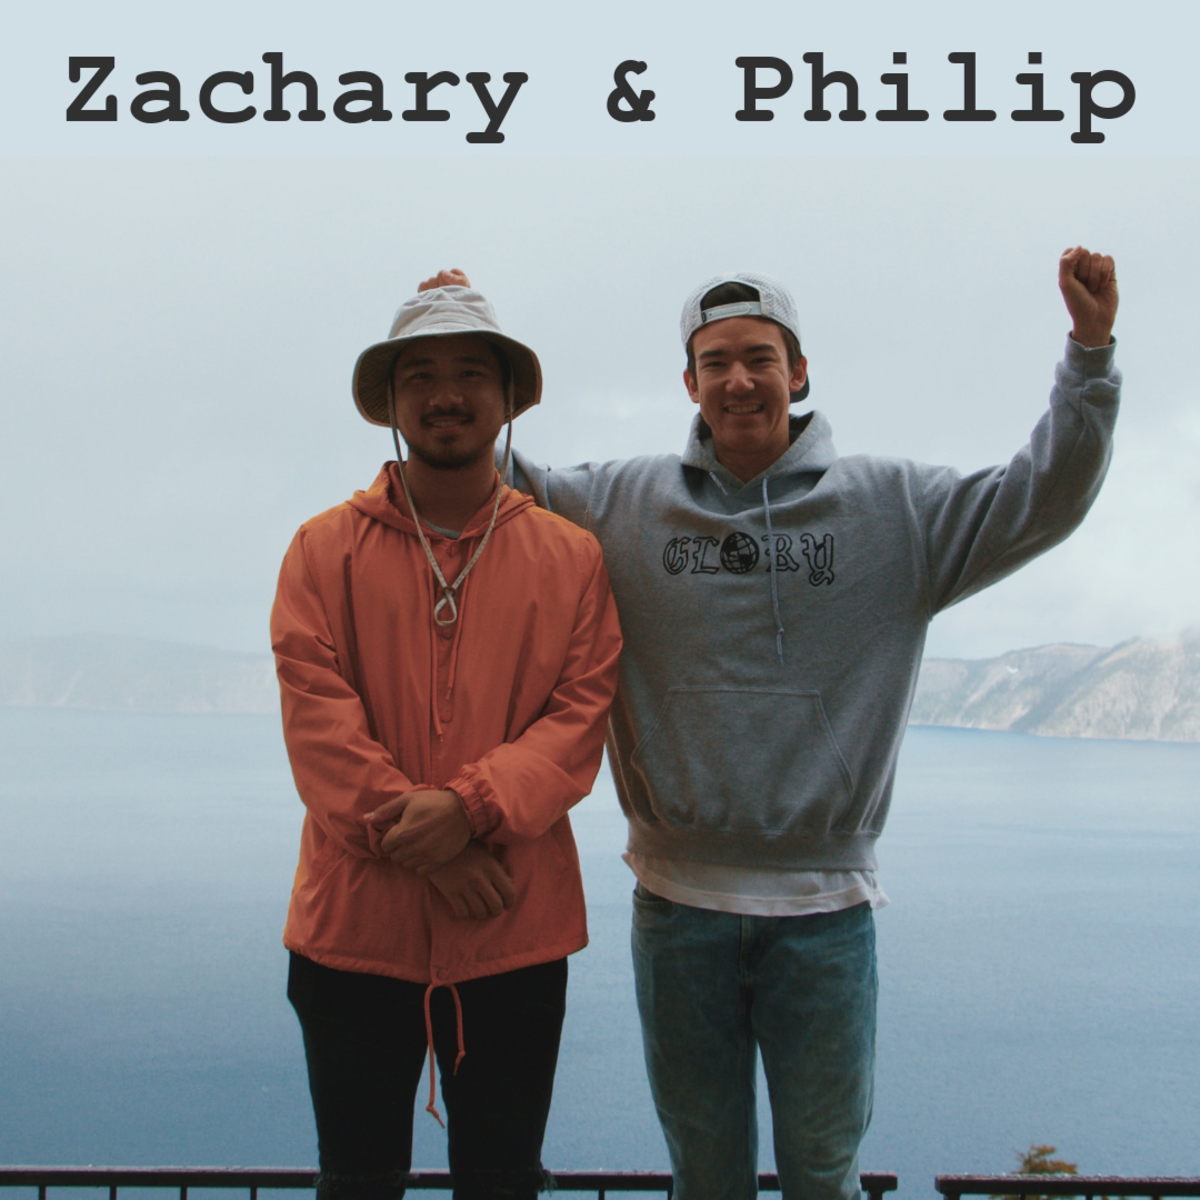 Zachary and Philip